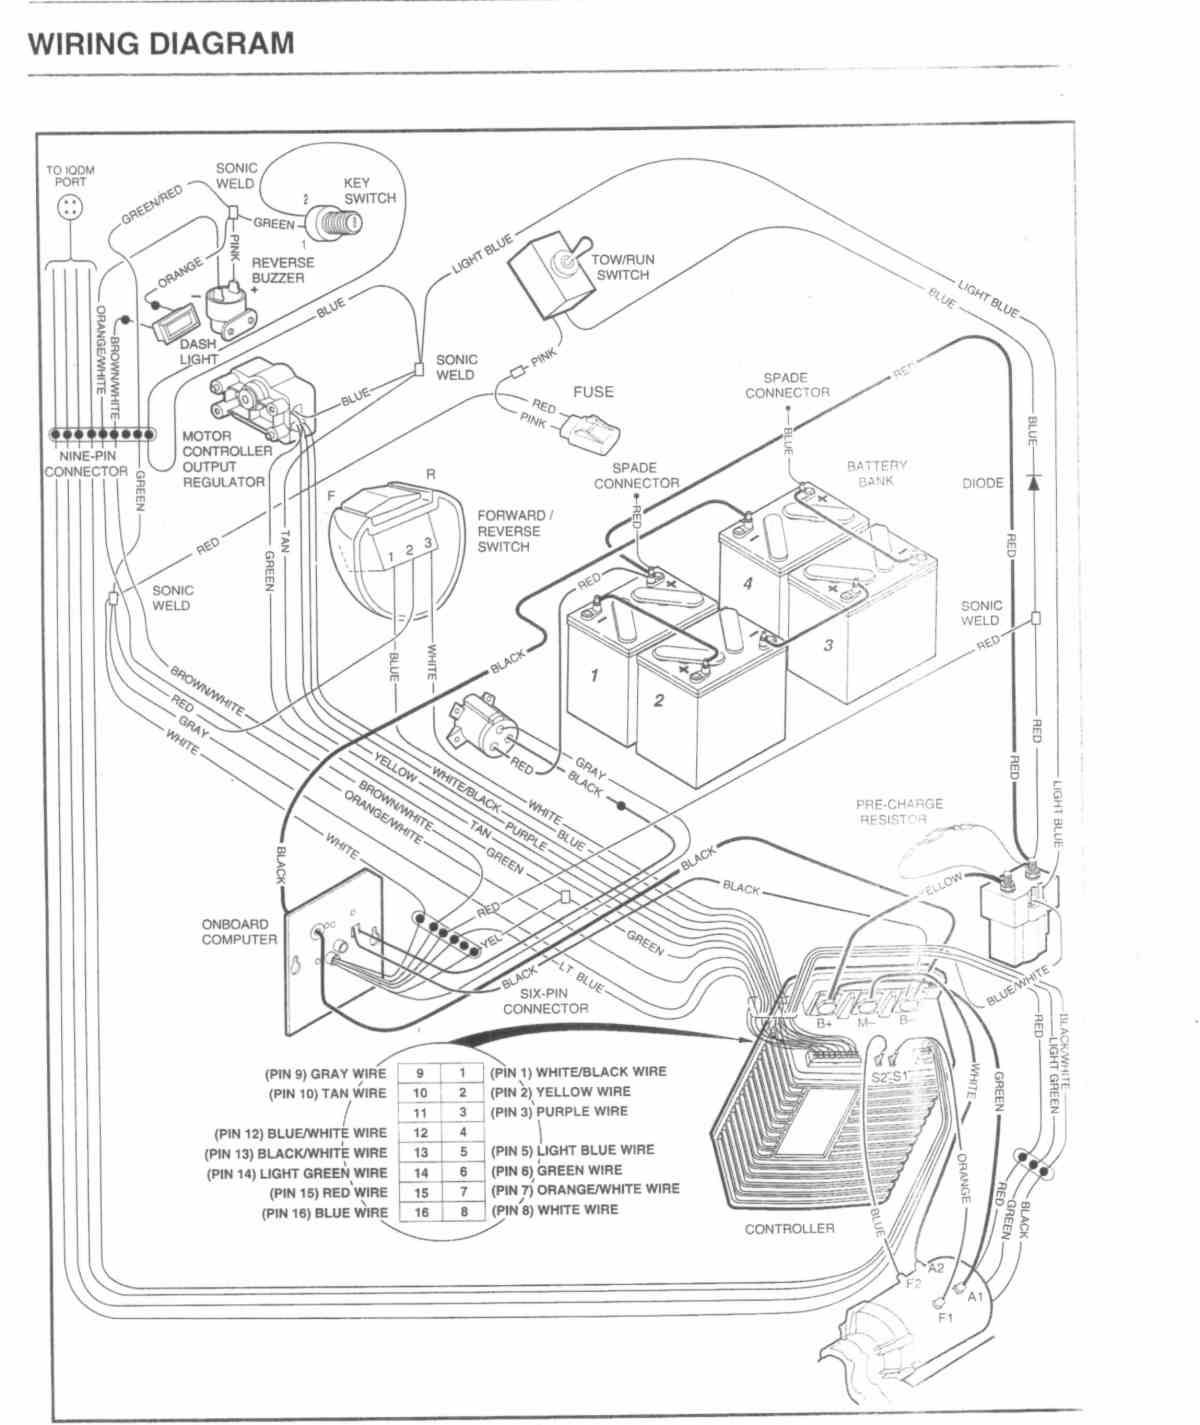 Diagram 2003 Club Car Ds Wiring Diagram Full Version Hd Quality Wiring Diagram Jdpre Wiringk Queidue It